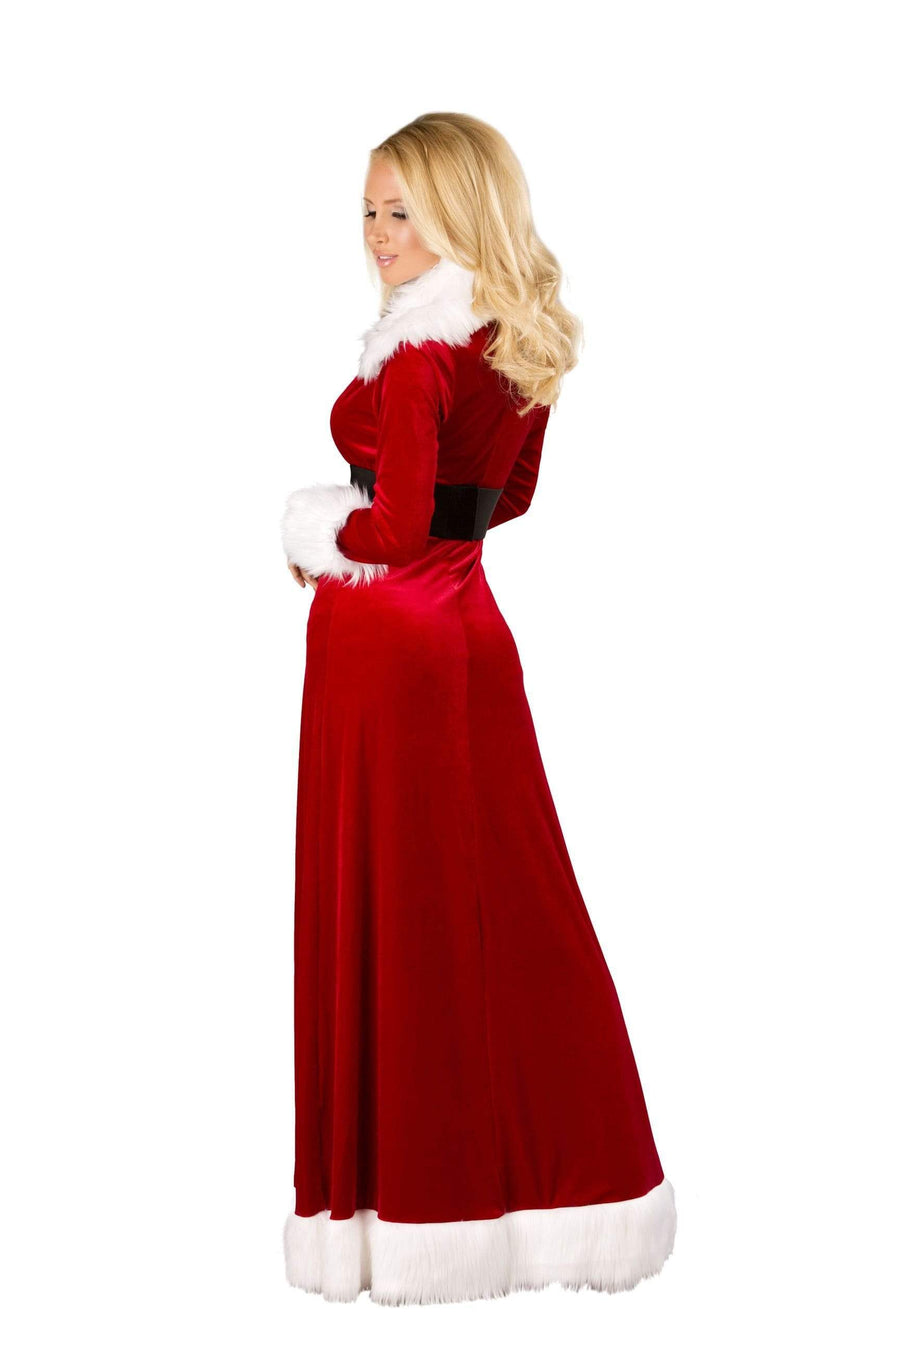 Roma S/M / Red Sexy Miss Claus Red Velvet Fur Trim Robe w/ Boy Short Christmas Set SHC-C170-S/M-R Apparel & Accessories > Costumes & Accessories > Costumes